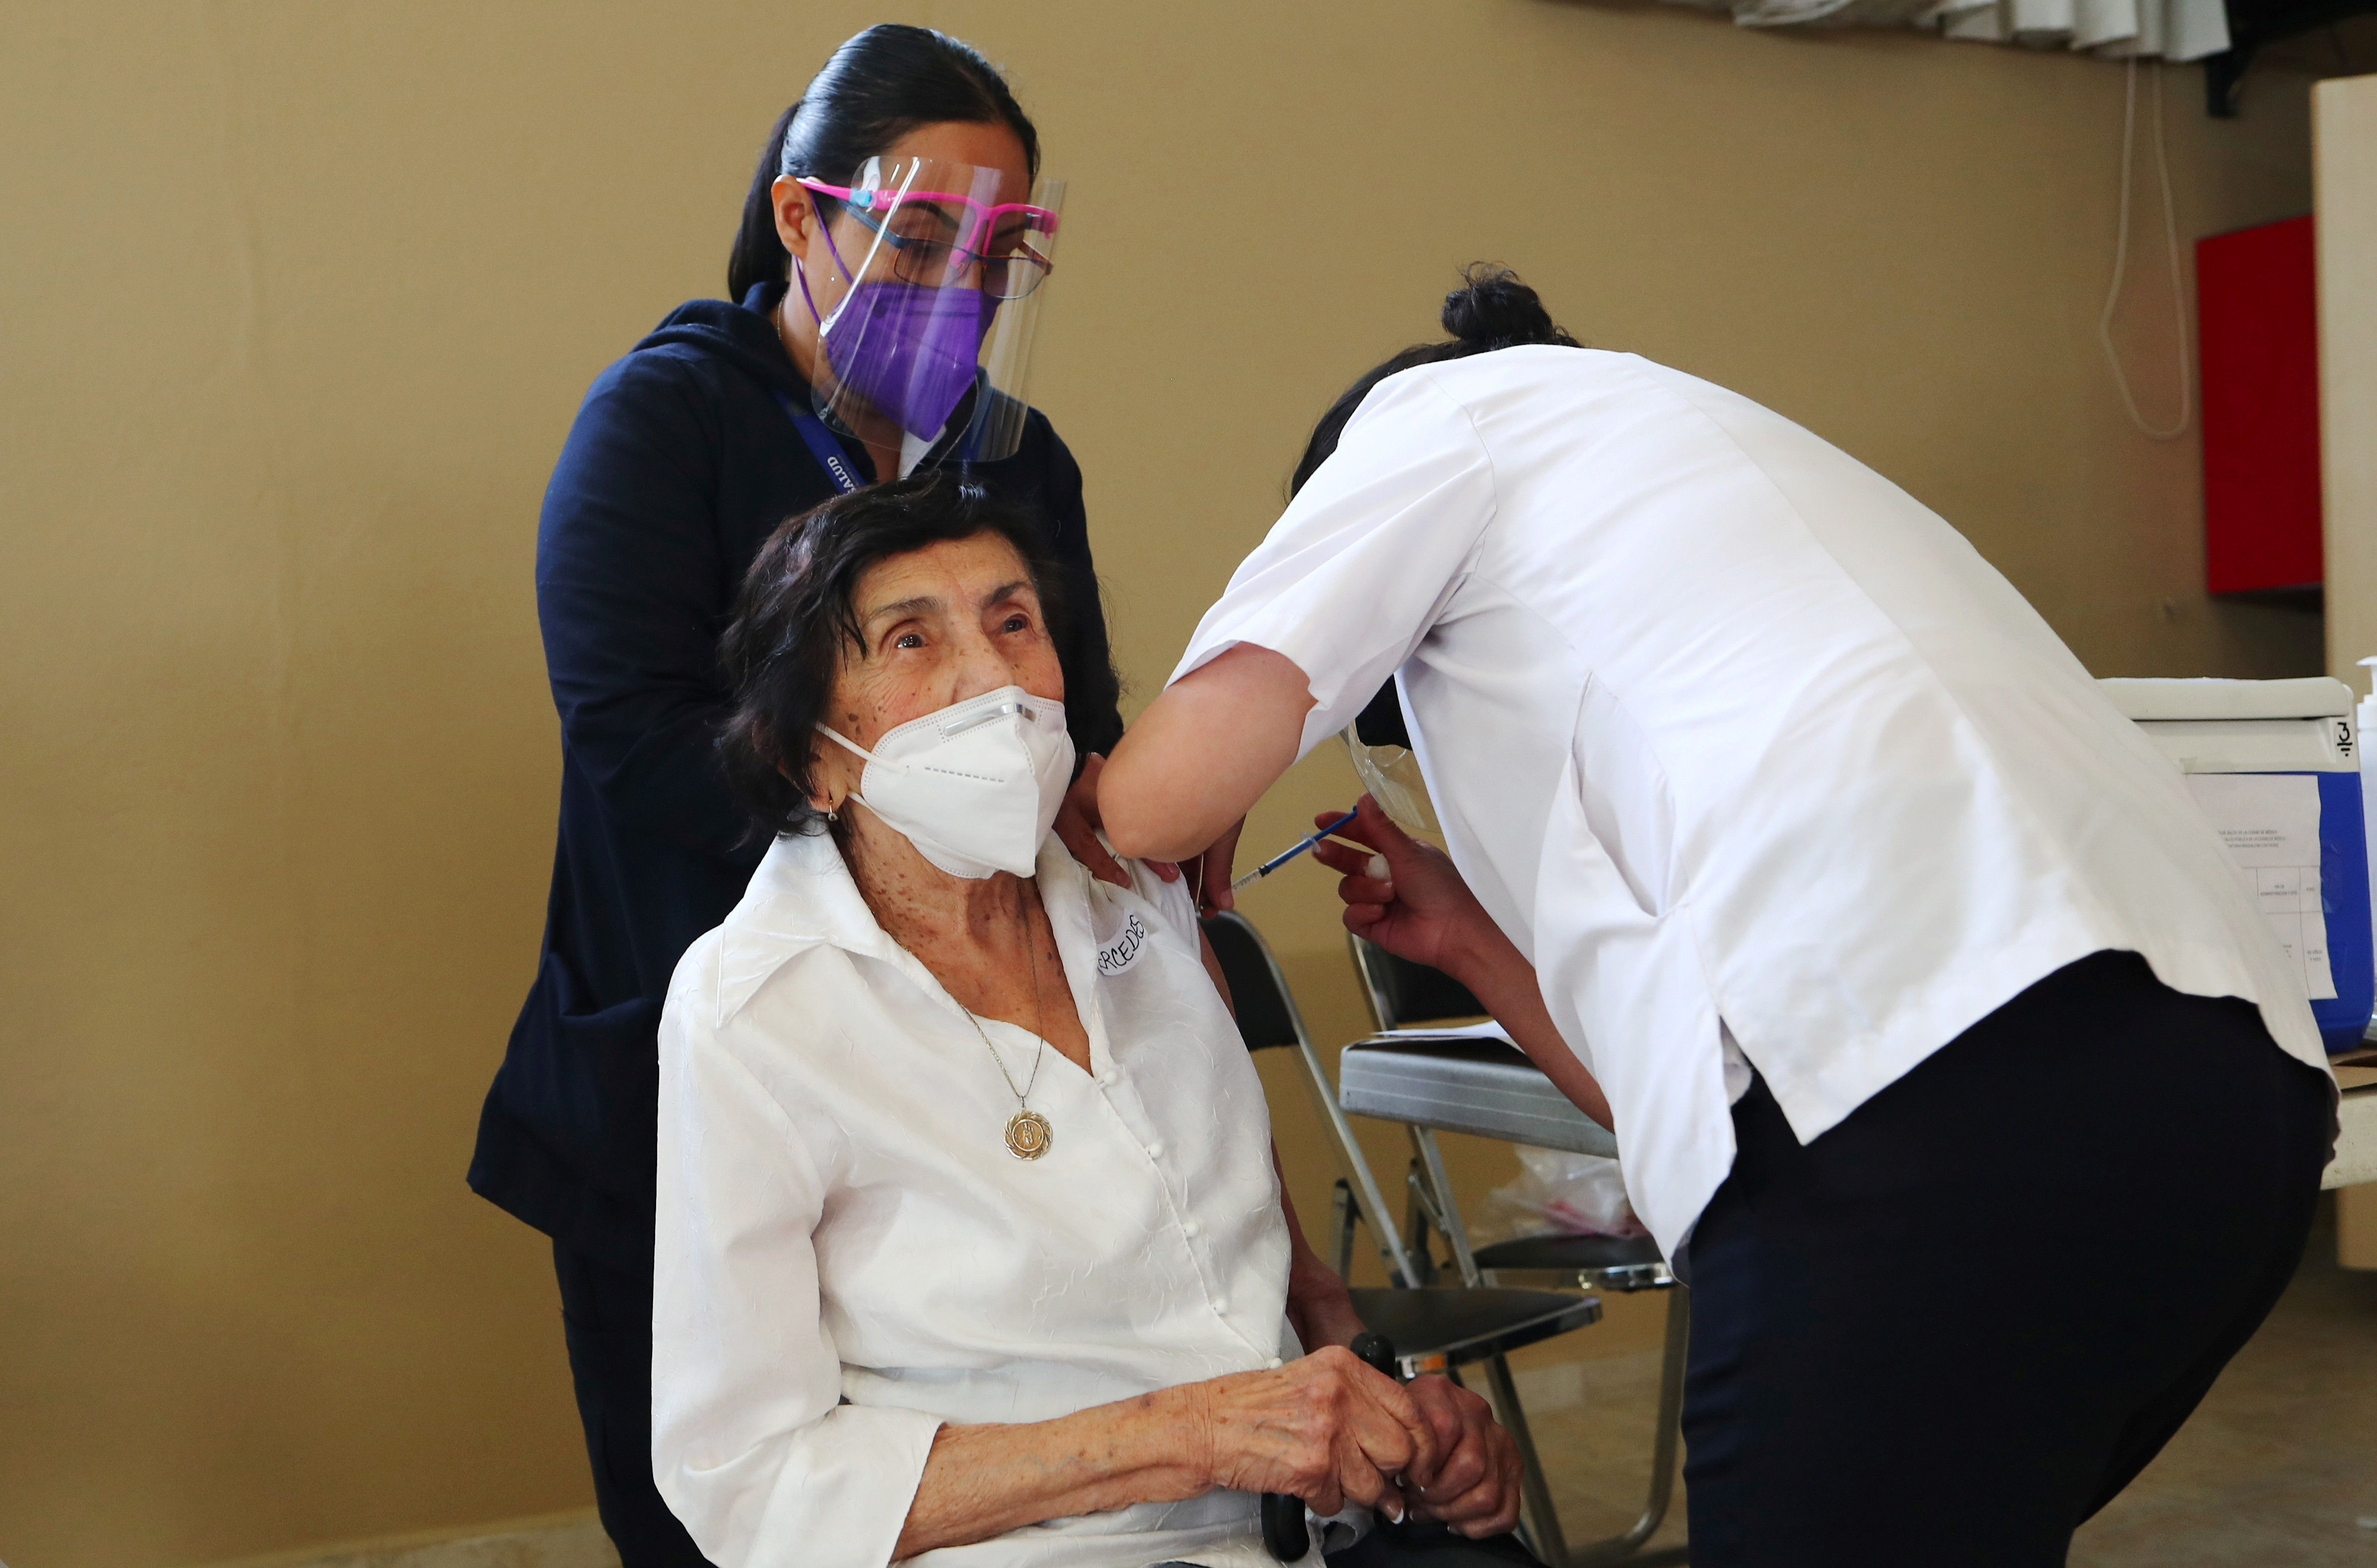 Health workers administer a dose of the AstraZeneca coronavirus disease (COVID-19) vaccine to an elderly woman, at a nursing home in Mexico City, Mexico, February 17, 2021. REUTERS/Henry Romero - RC2NUL9G44J5